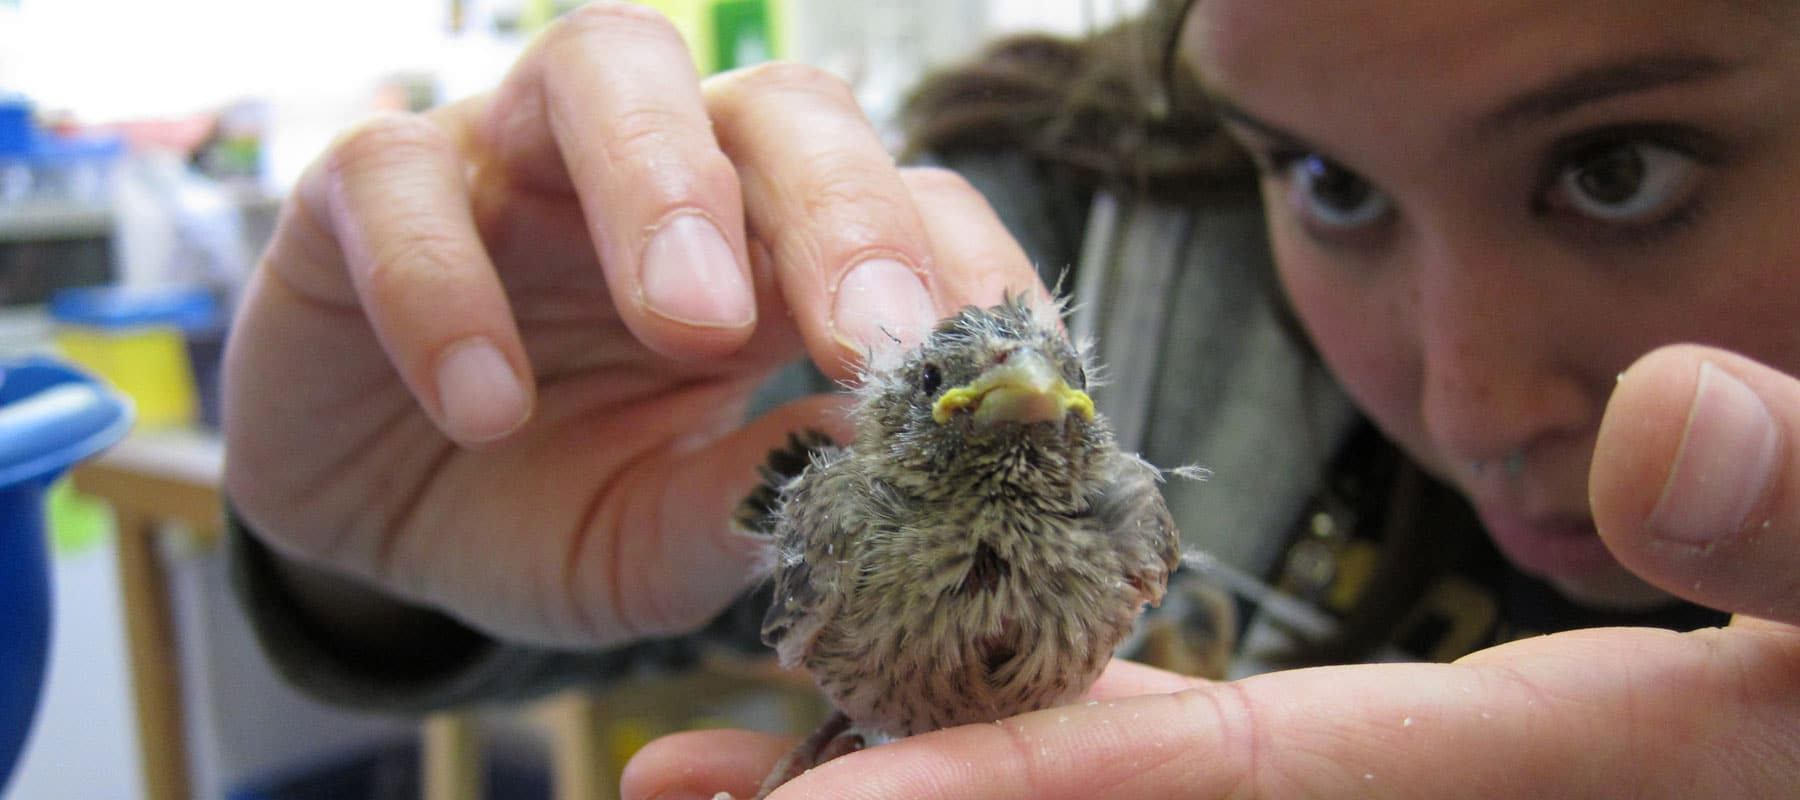 Examining a songbird at WildCare. Photo by Alison Hermance